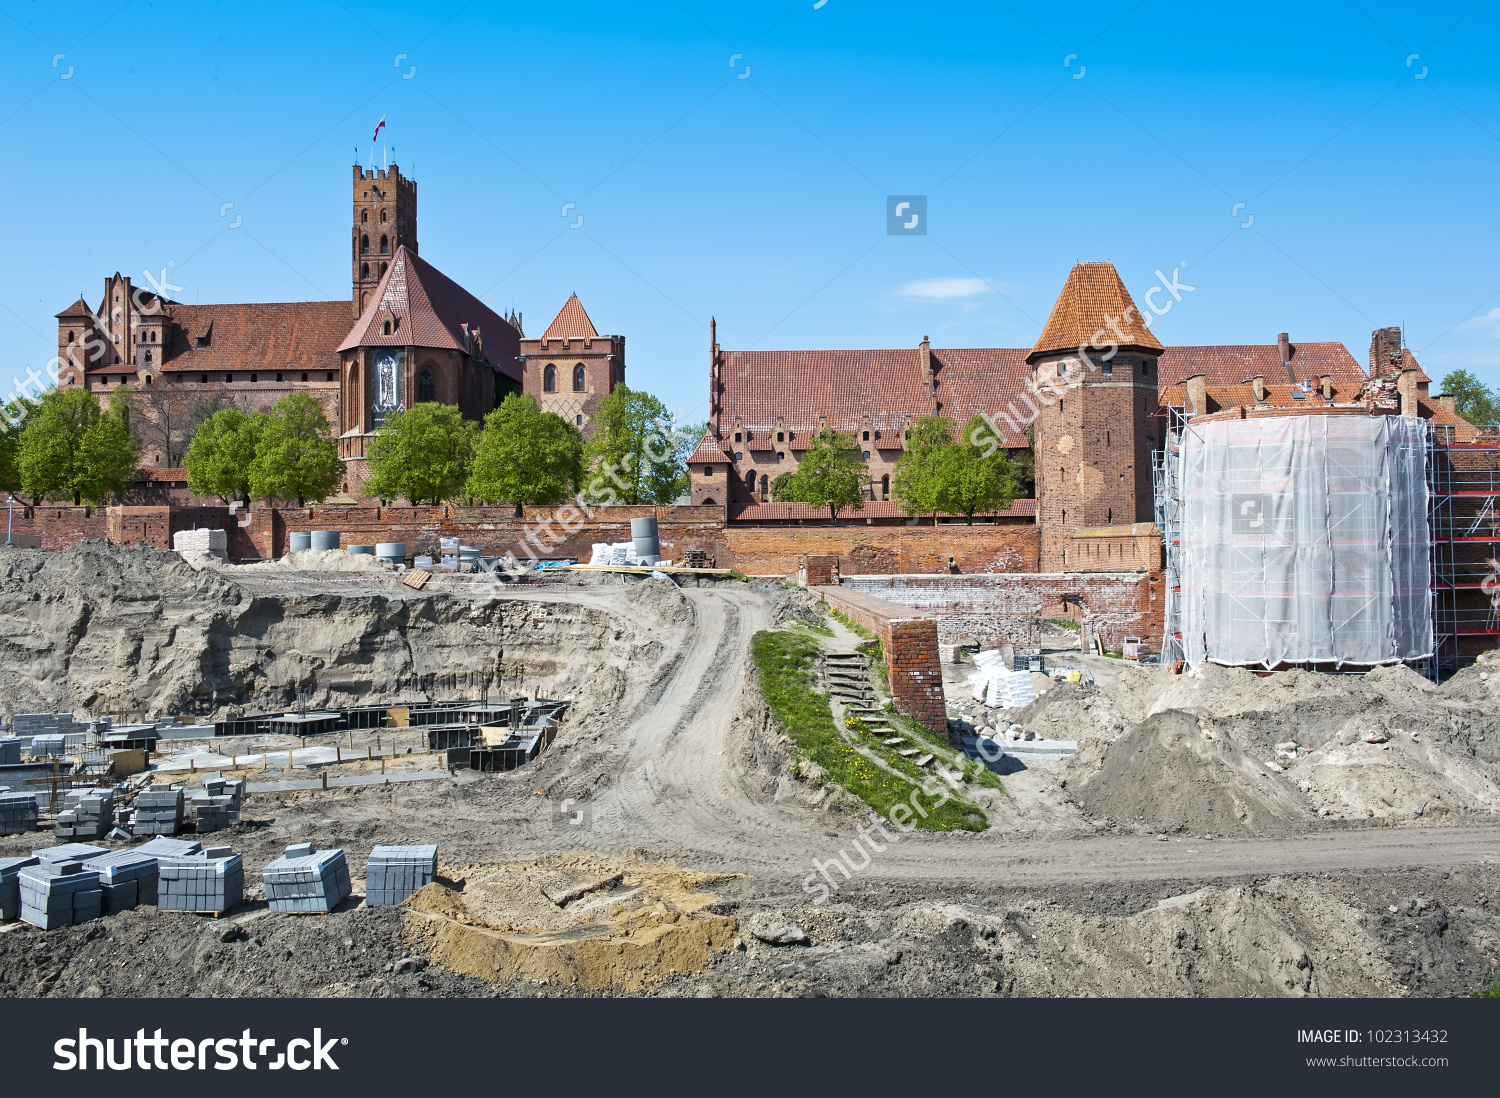 Reconstruction Of The Medieval Teutonic Knights' Fortress In.